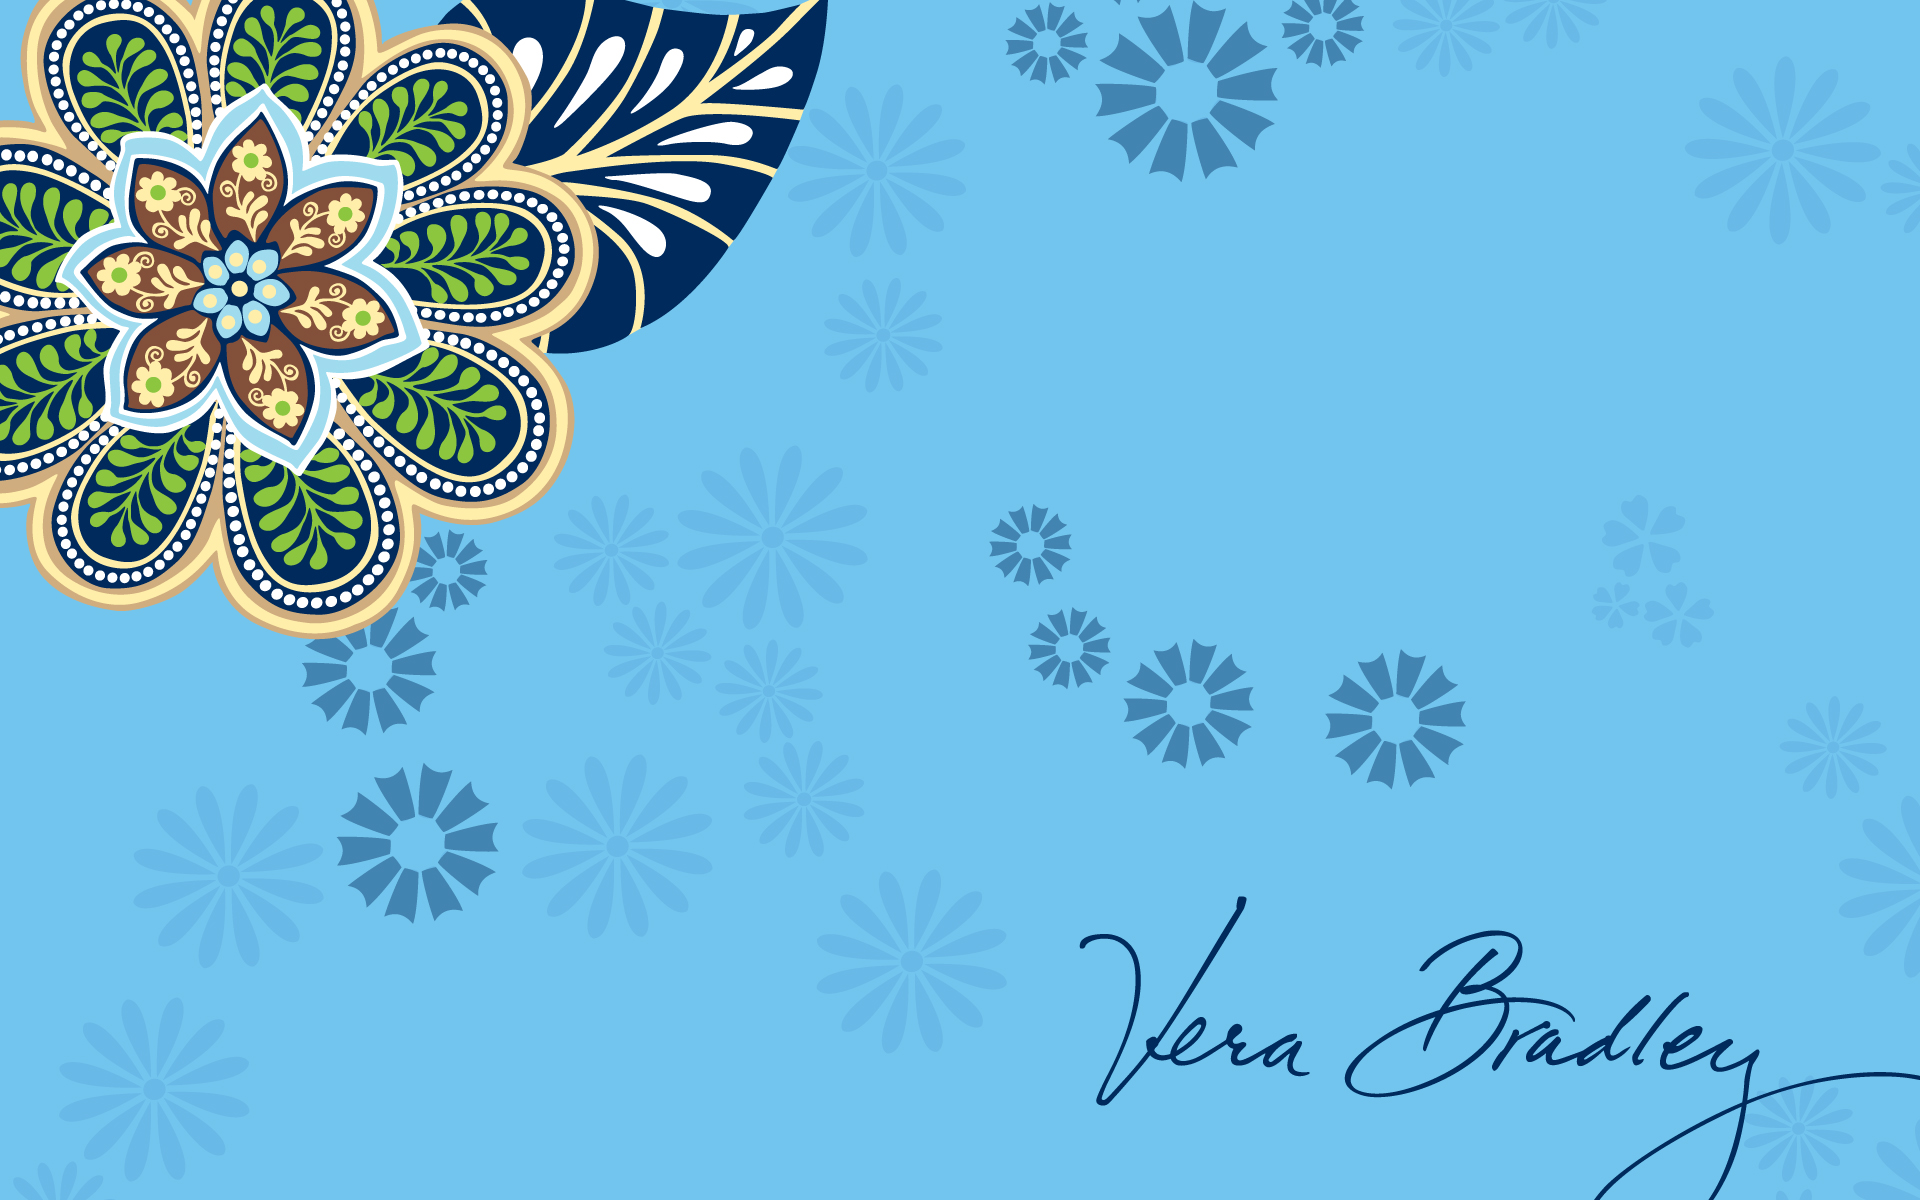 Vb Wallpapers Vera Bradley Wallpaper 35126636 Fanpop